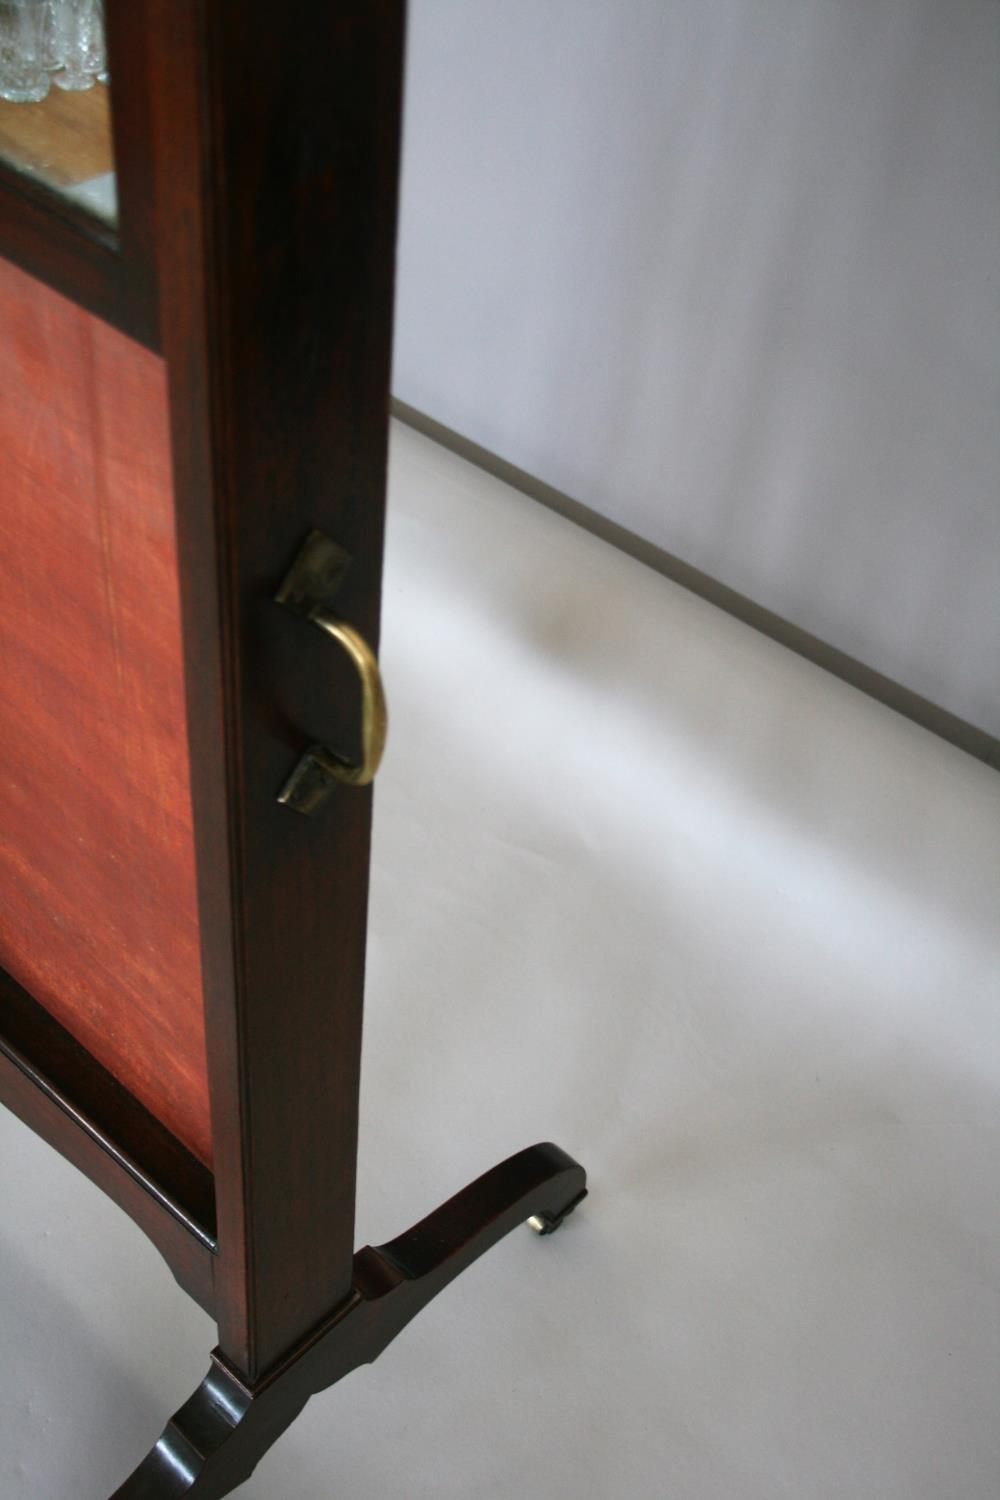 Georgian mahogany robing mirror with rise and fall action with brass carrying handle. Jackson of - Image 2 of 4